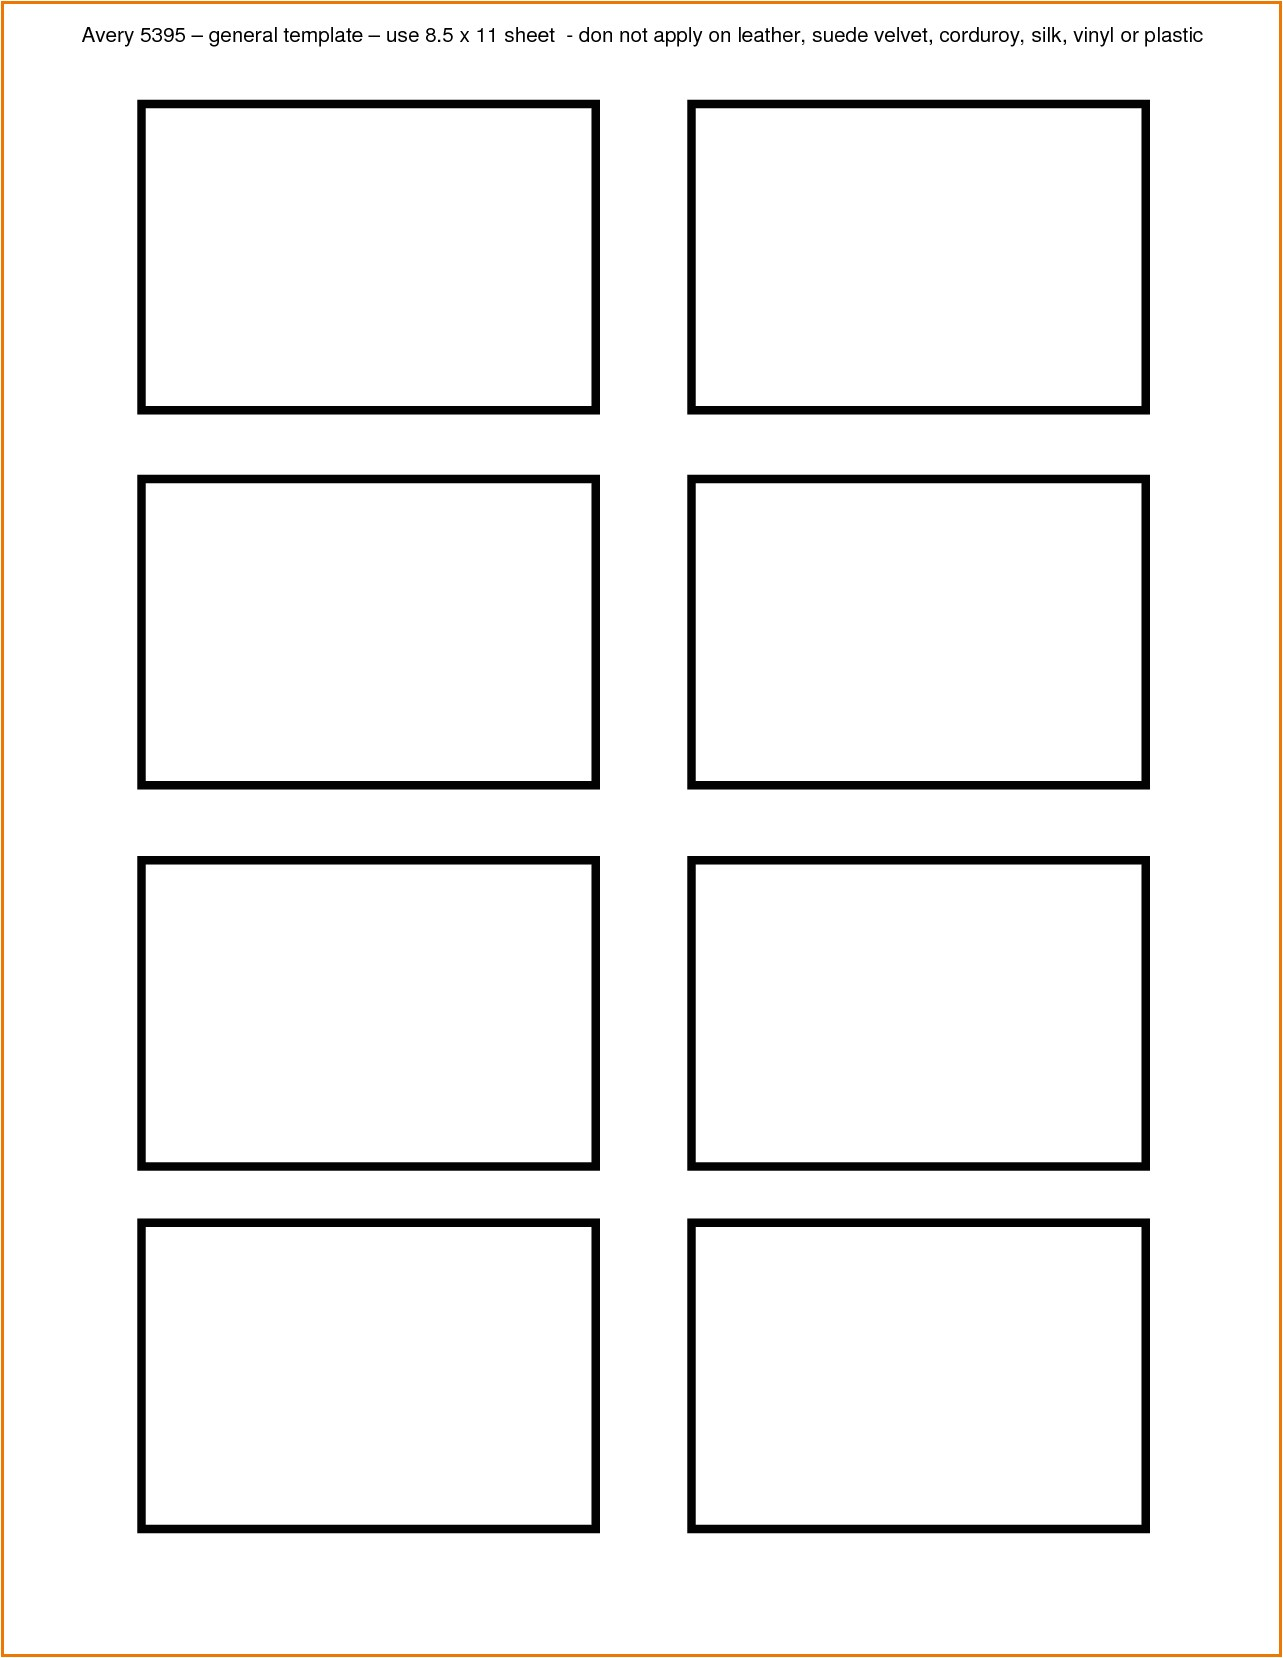 4 avery name tag template